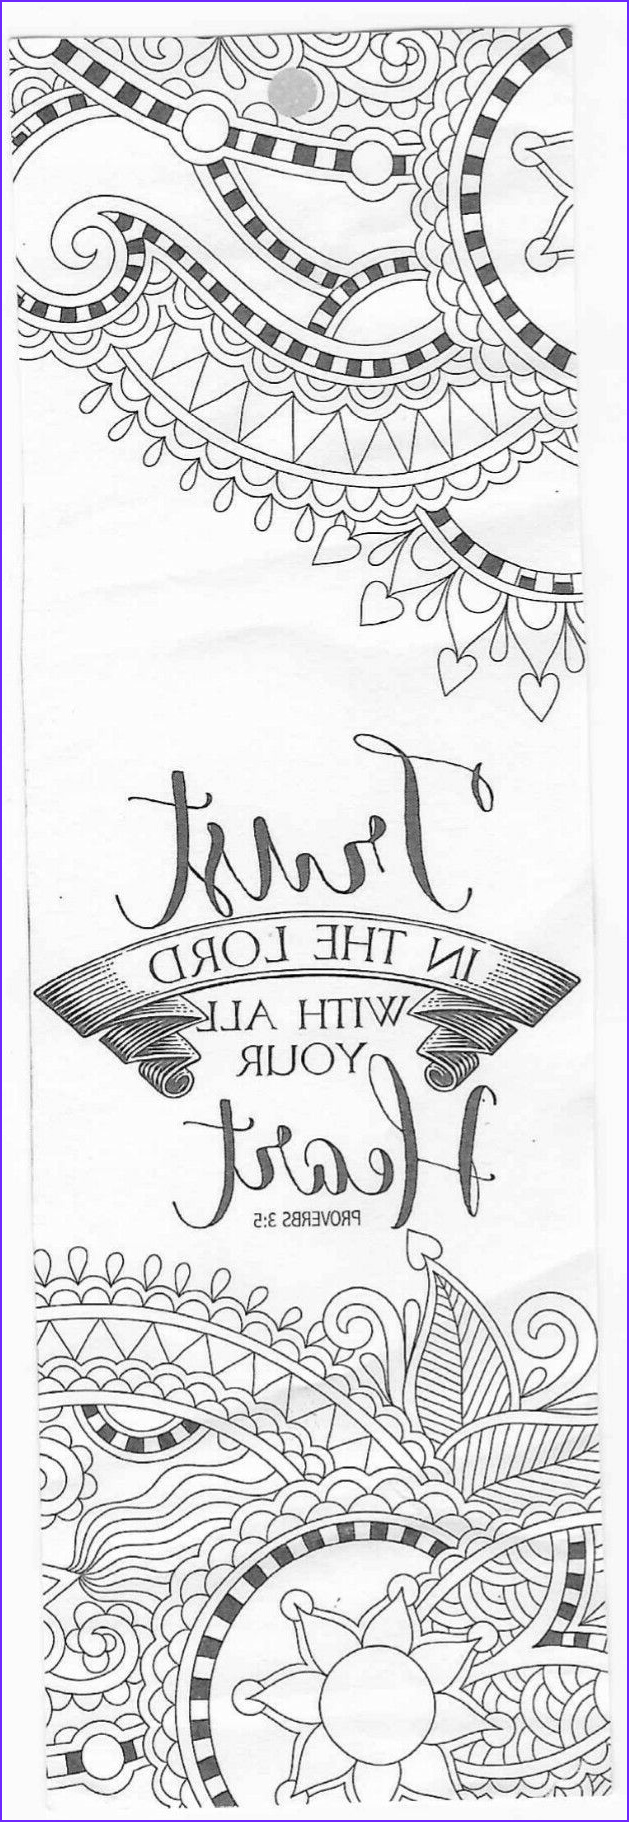 Love the Lord Your God with All Your Heart Coloring Page Unique Stock Trust In the Lord with All Your Heart Color Your Own